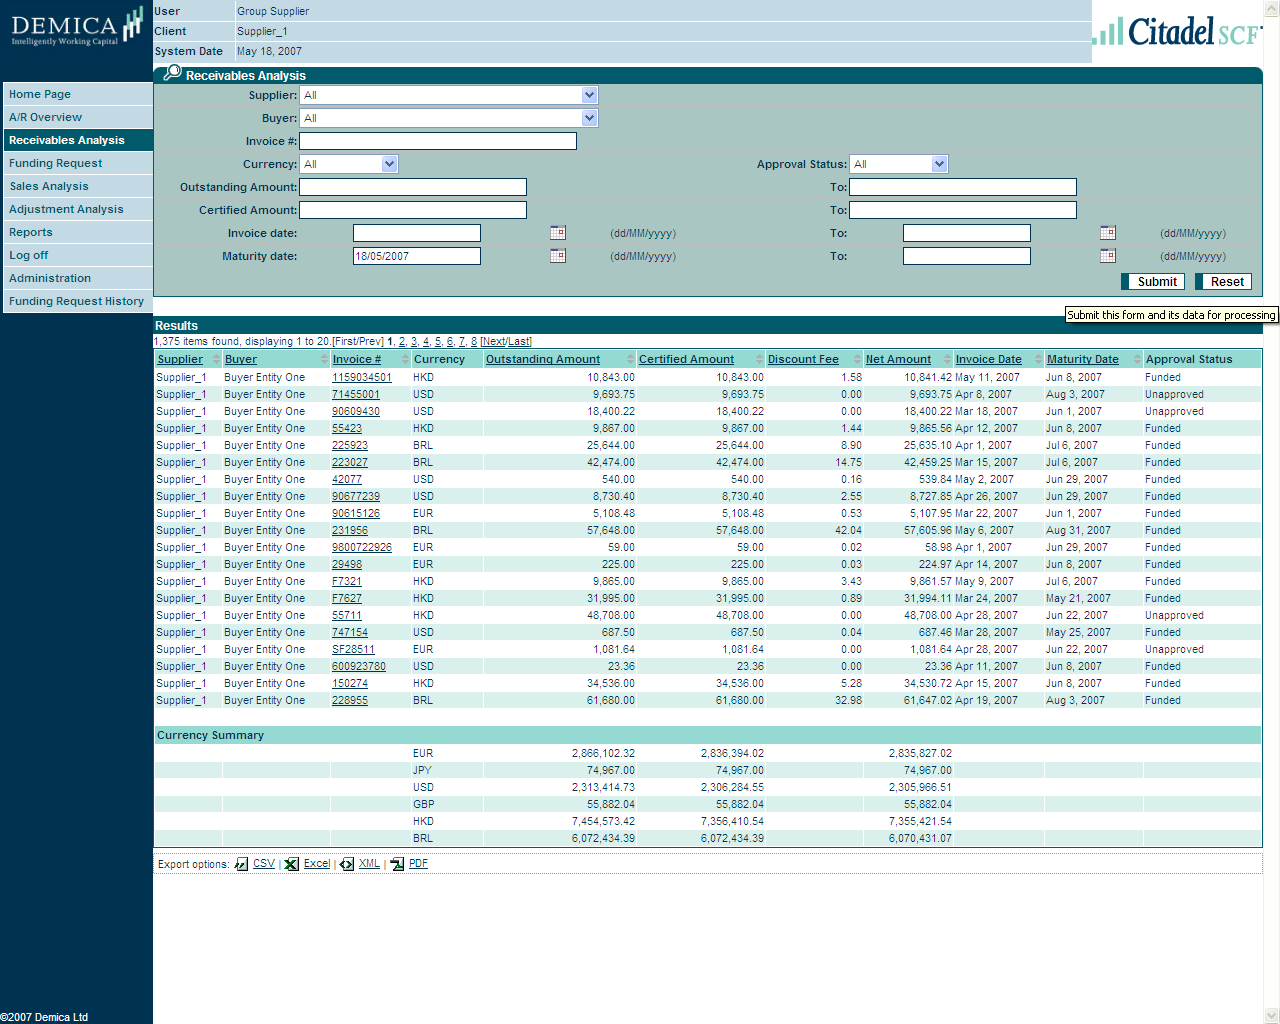 33 receivables analysis All accounts receivable with various menu options for display selection Summary information on every invoice that meets the display selection criteria